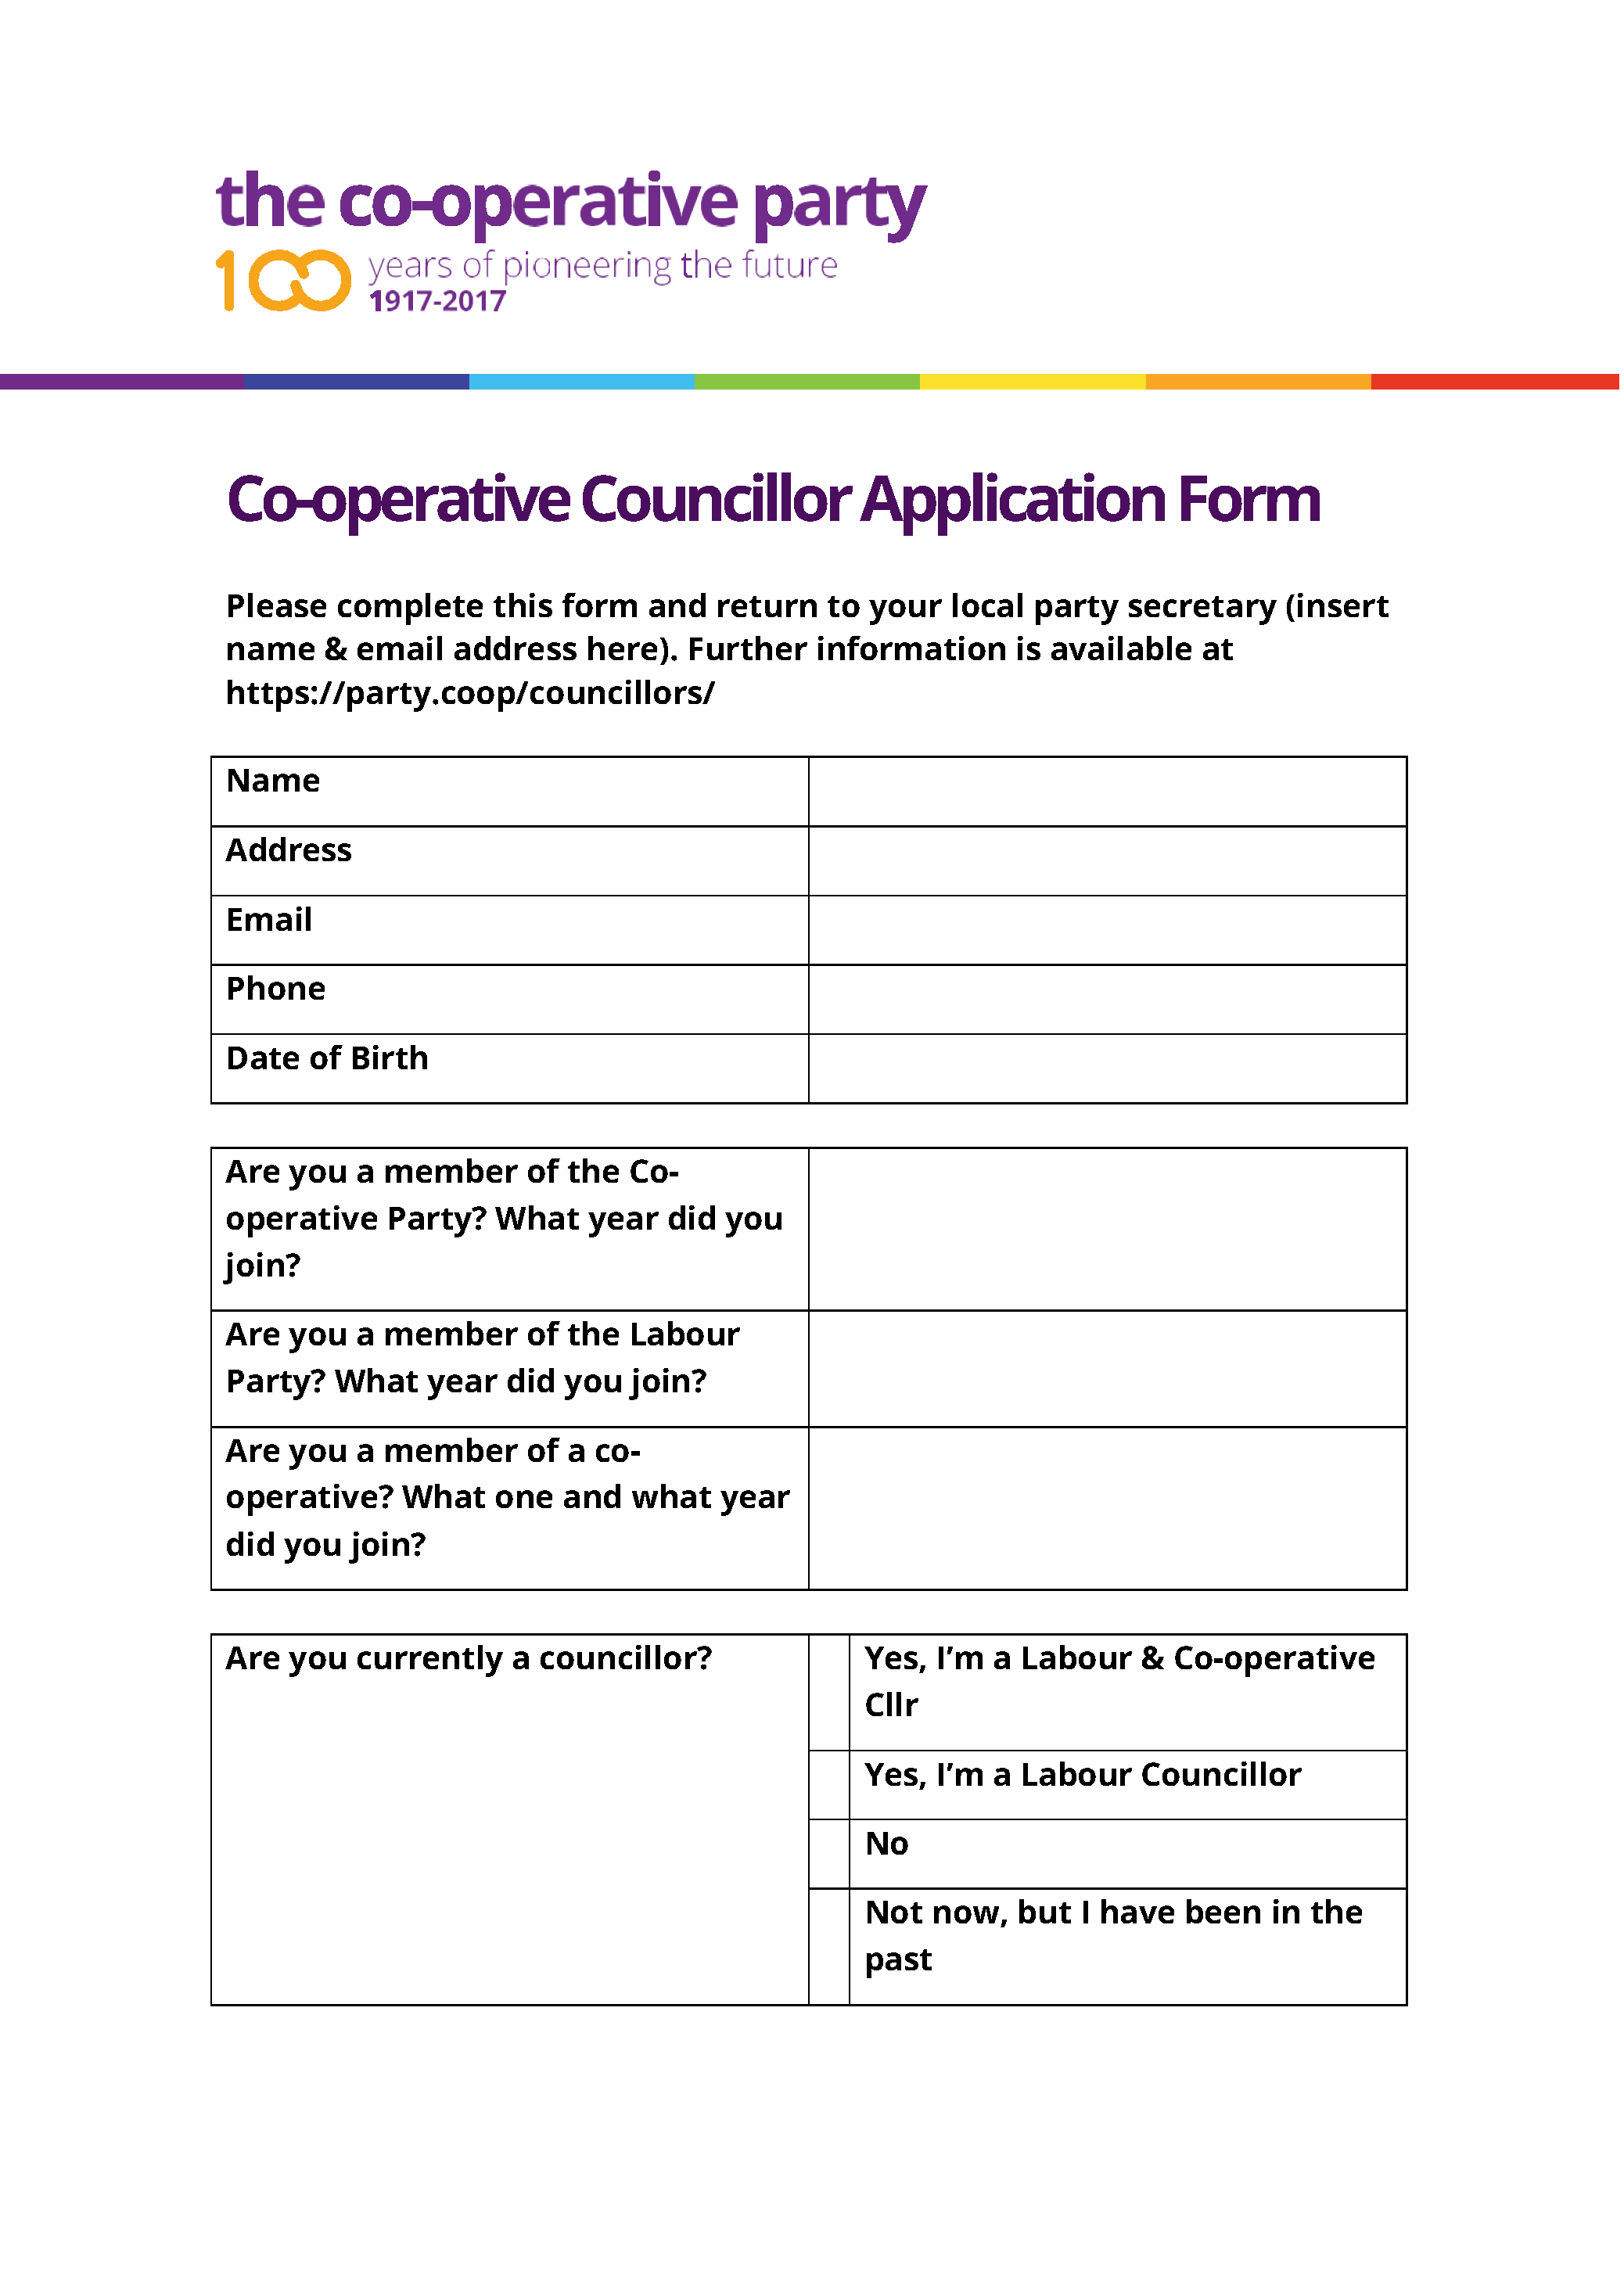 Councillor Application Form Template – The Co-operative Party